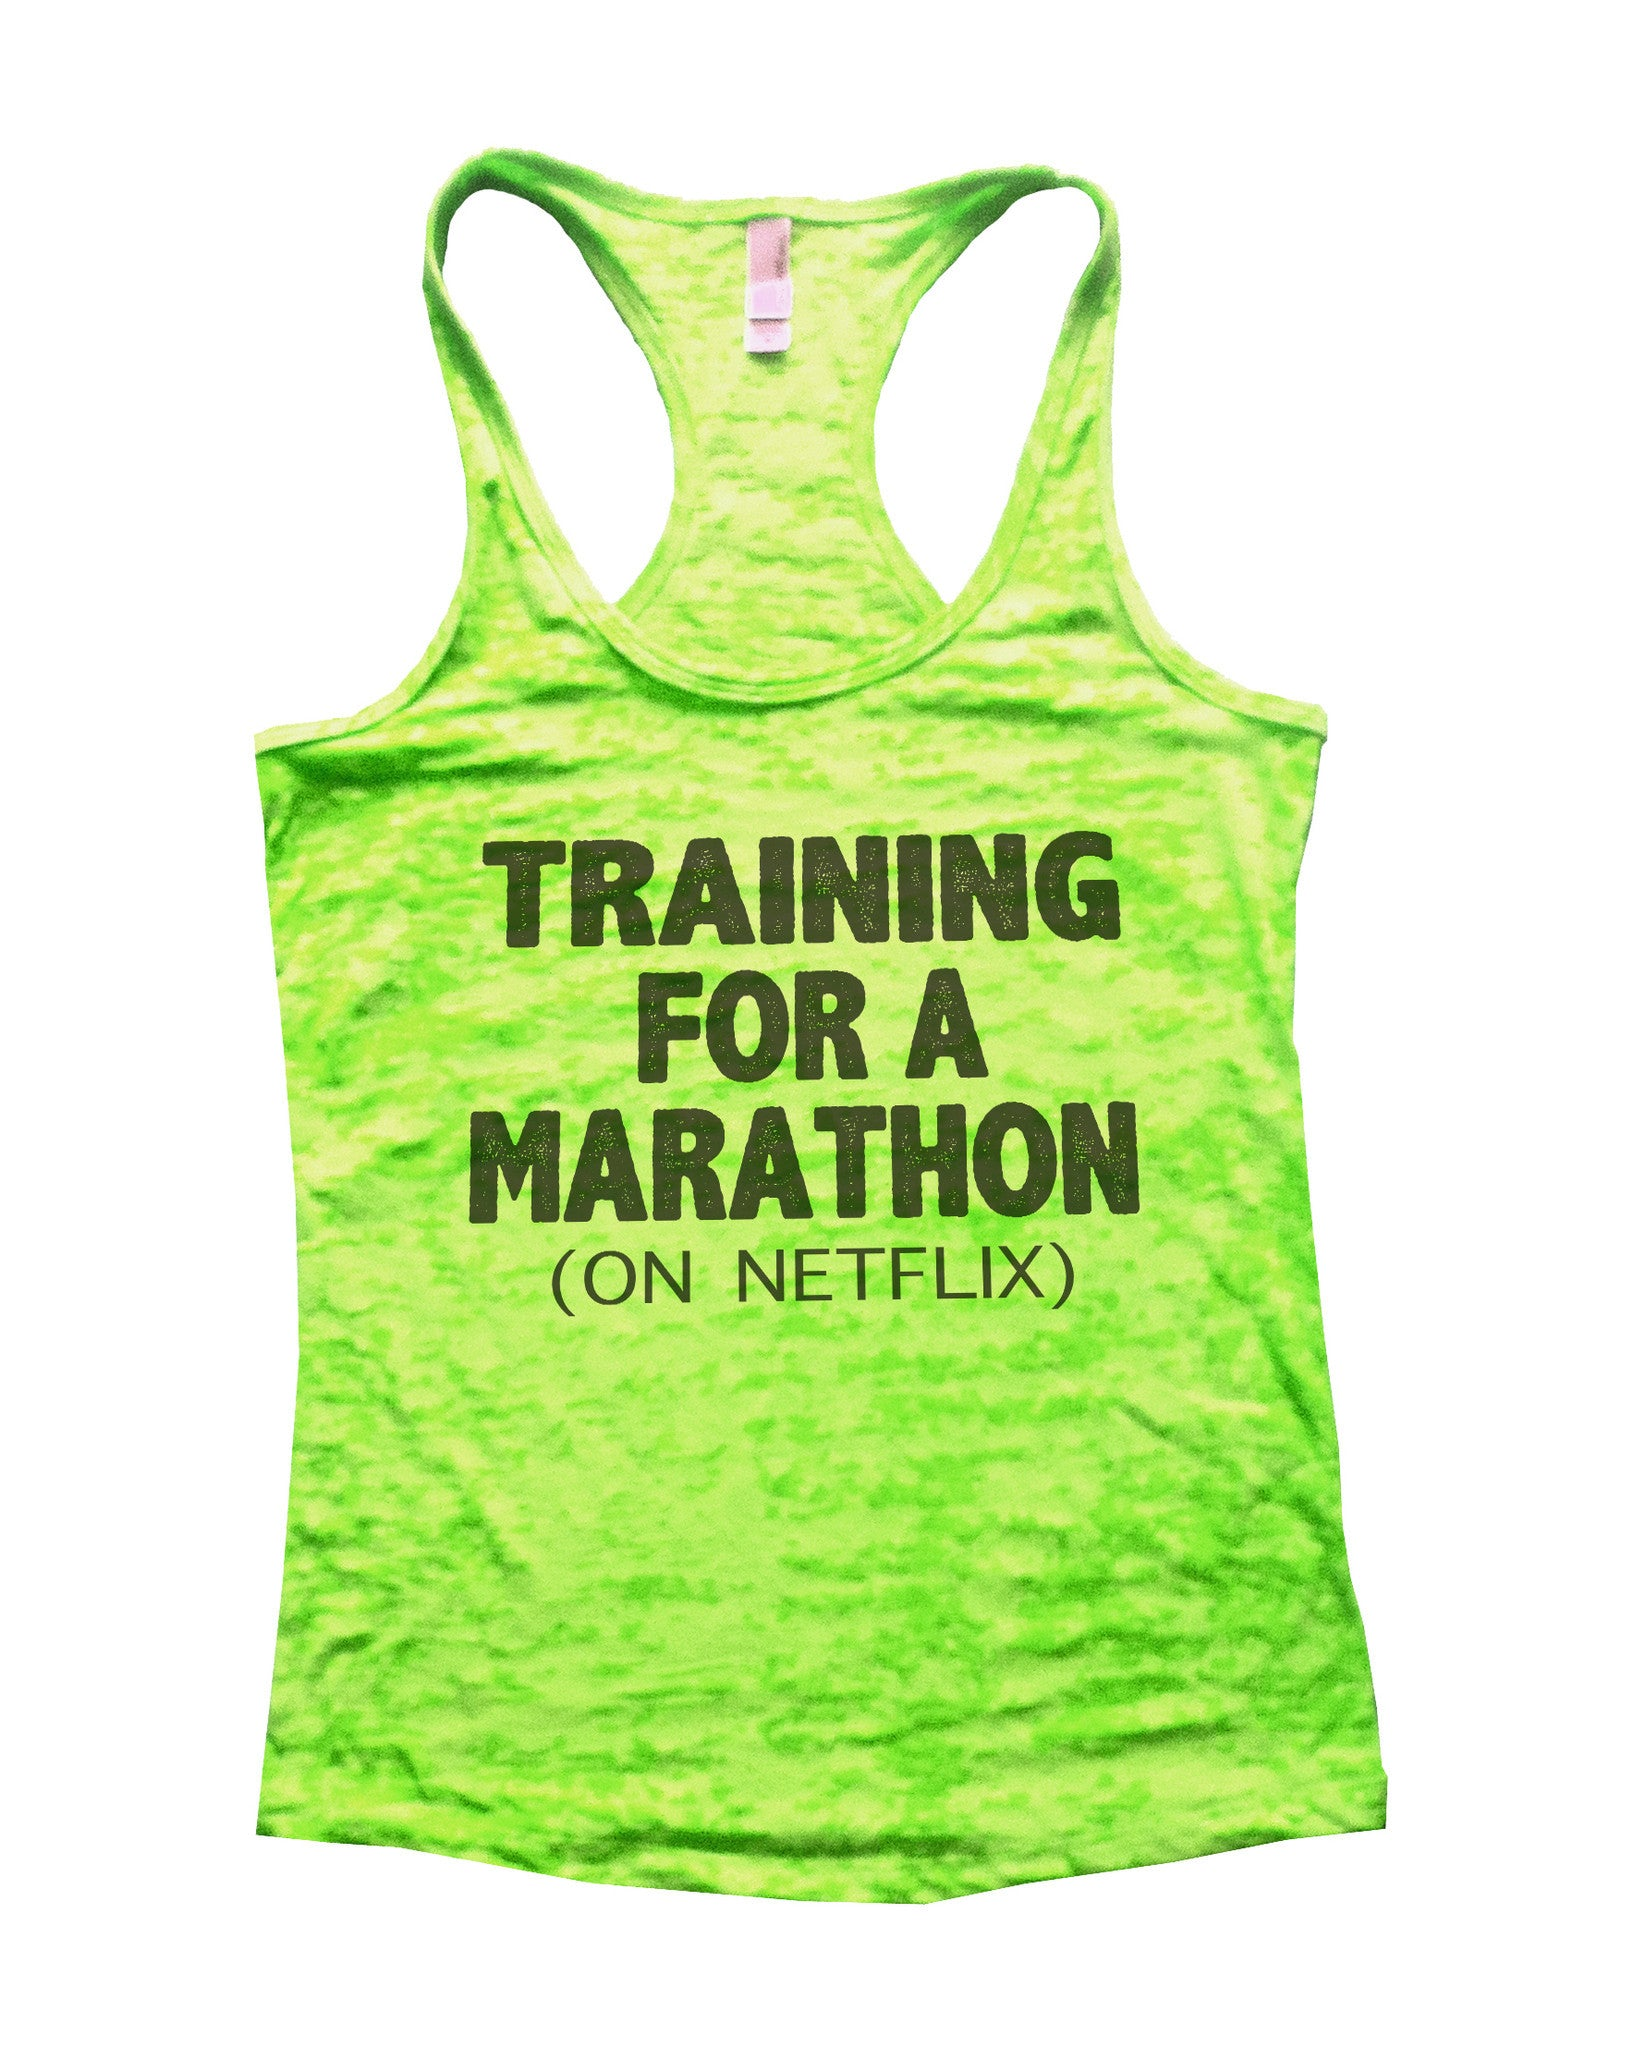 Training For A Marathon On Netflix Burnout Tank Top By BurnoutTankTops.com - 741 - Funny Shirts Tank Tops Burnouts and Triblends  - 2